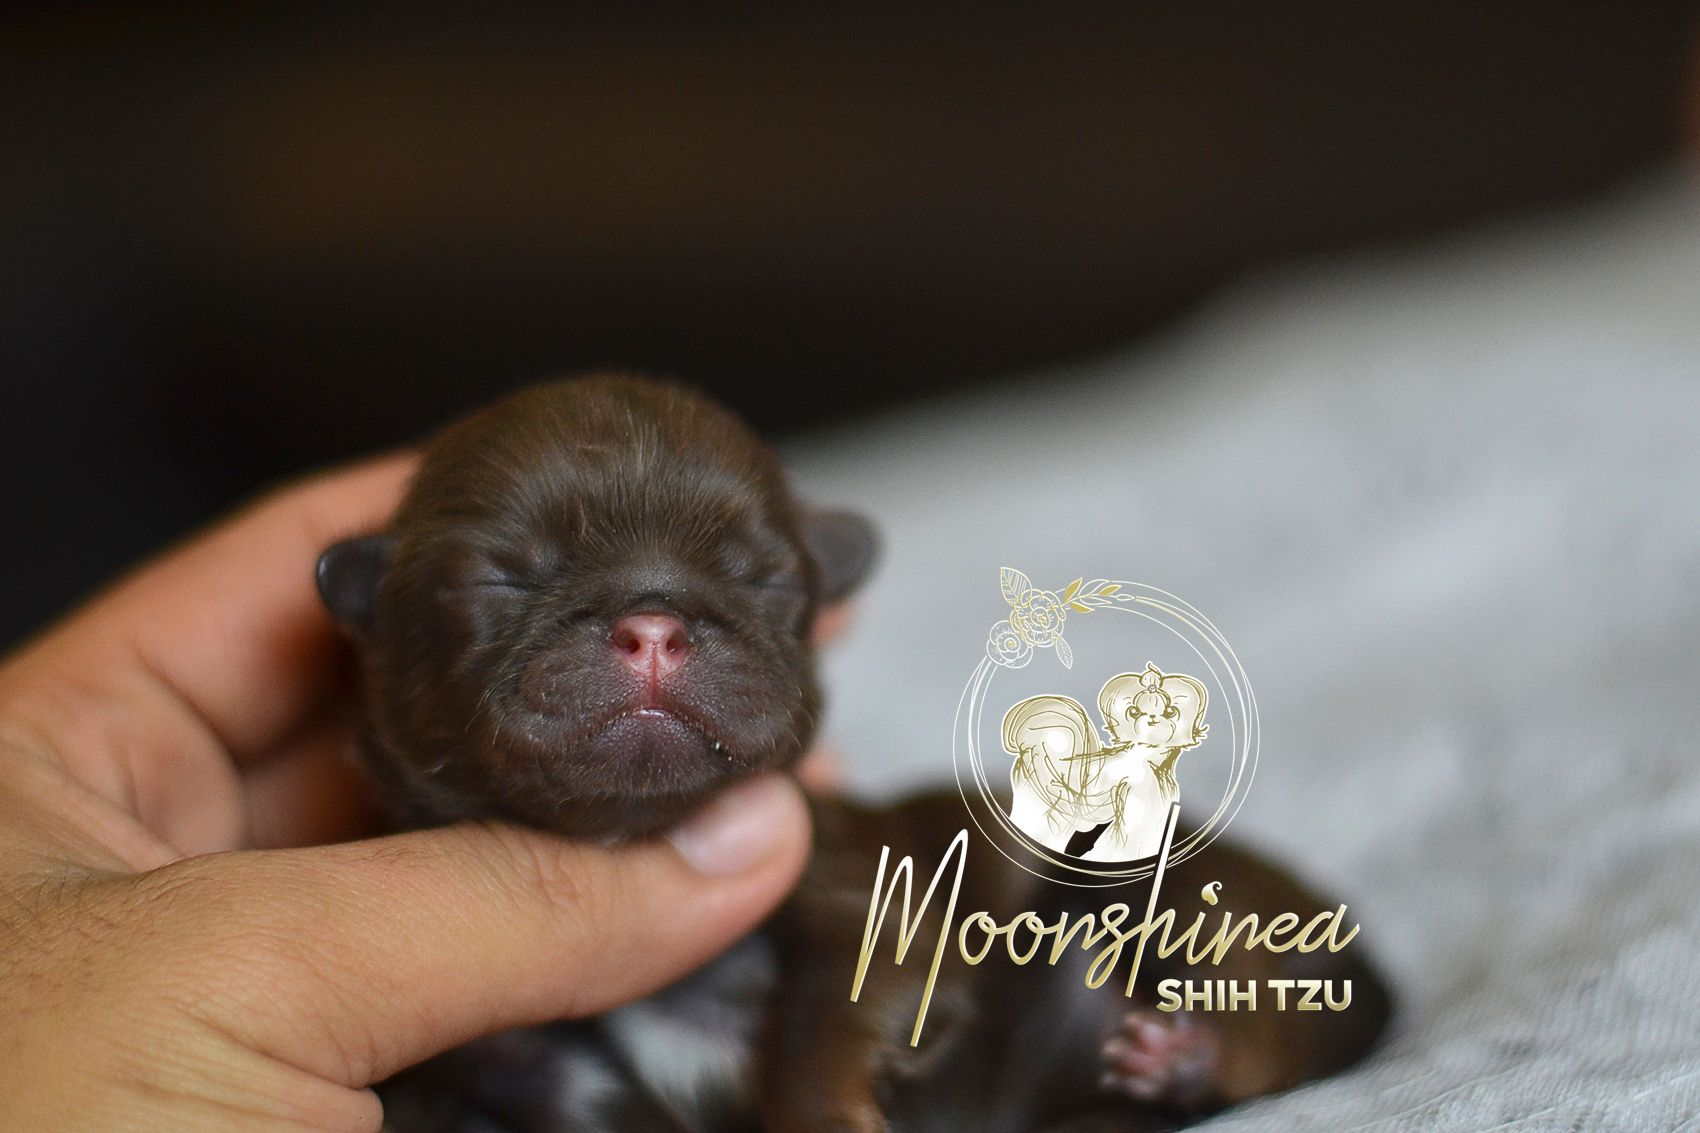 Newborn Chocolate Shih Tzu Philippines Shih Tzu Dogs Newborn